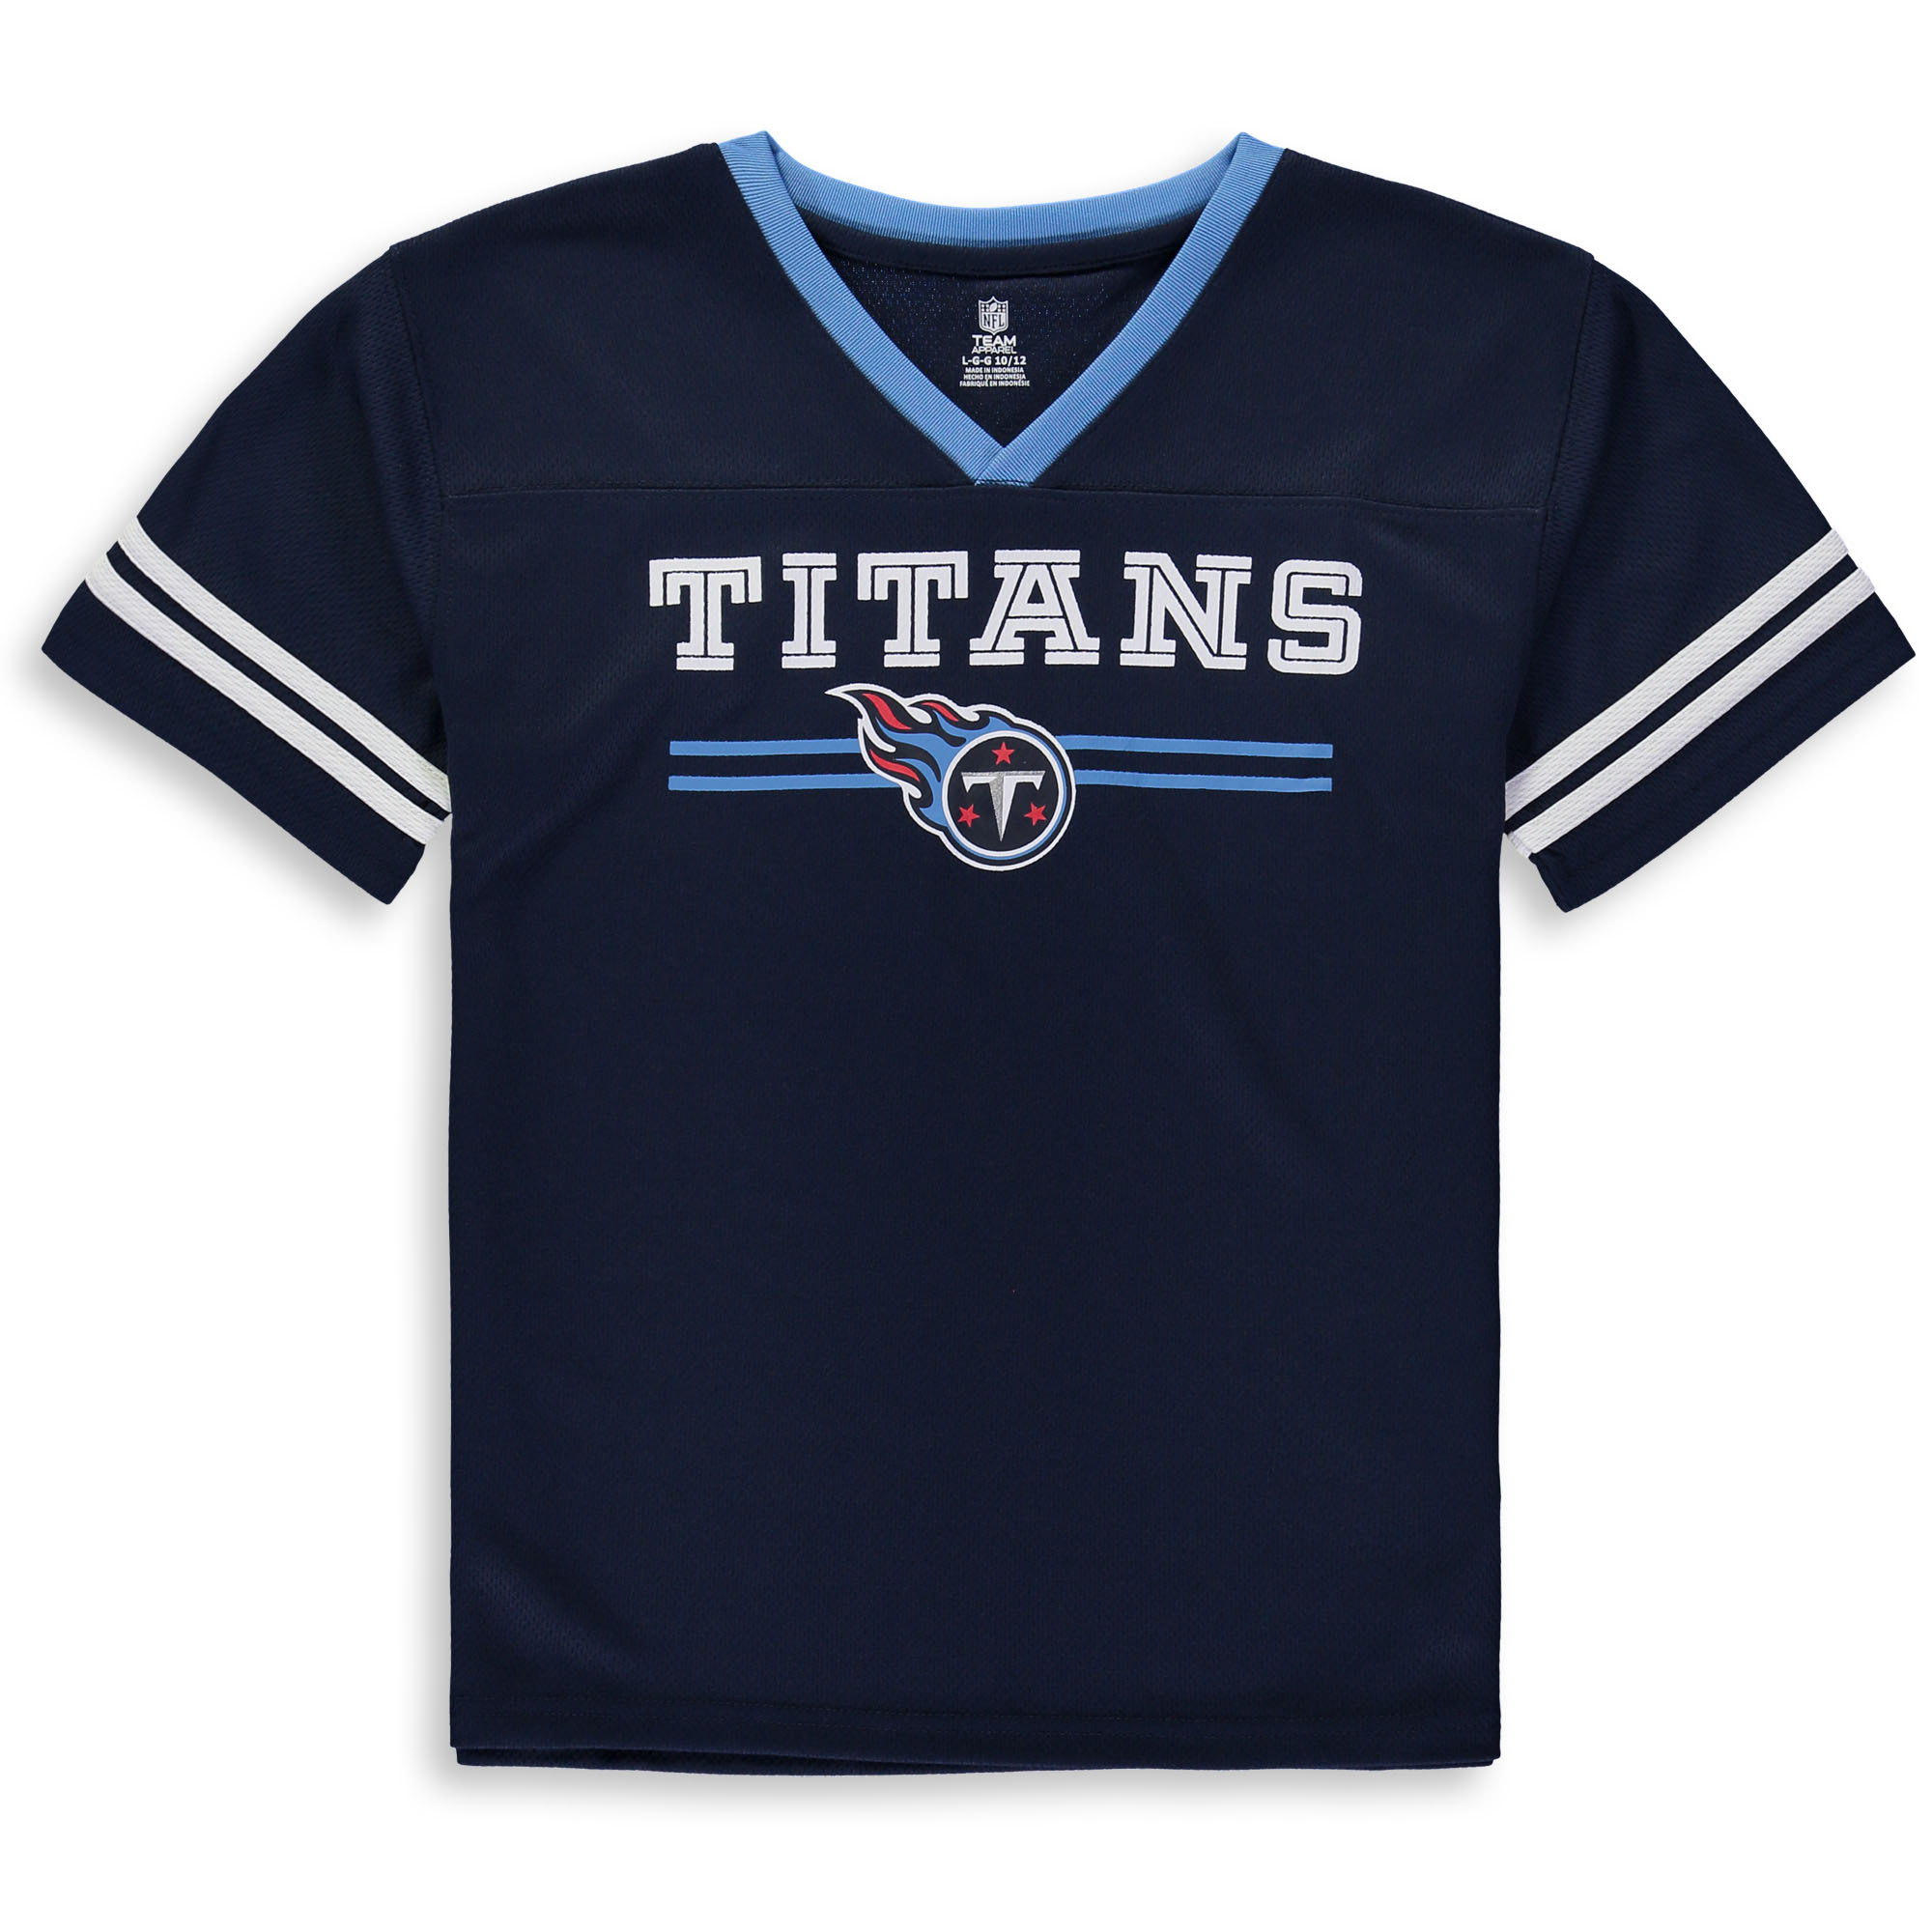 Youth Navy Tennessee Titans Mesh V-Neck T-Shirt